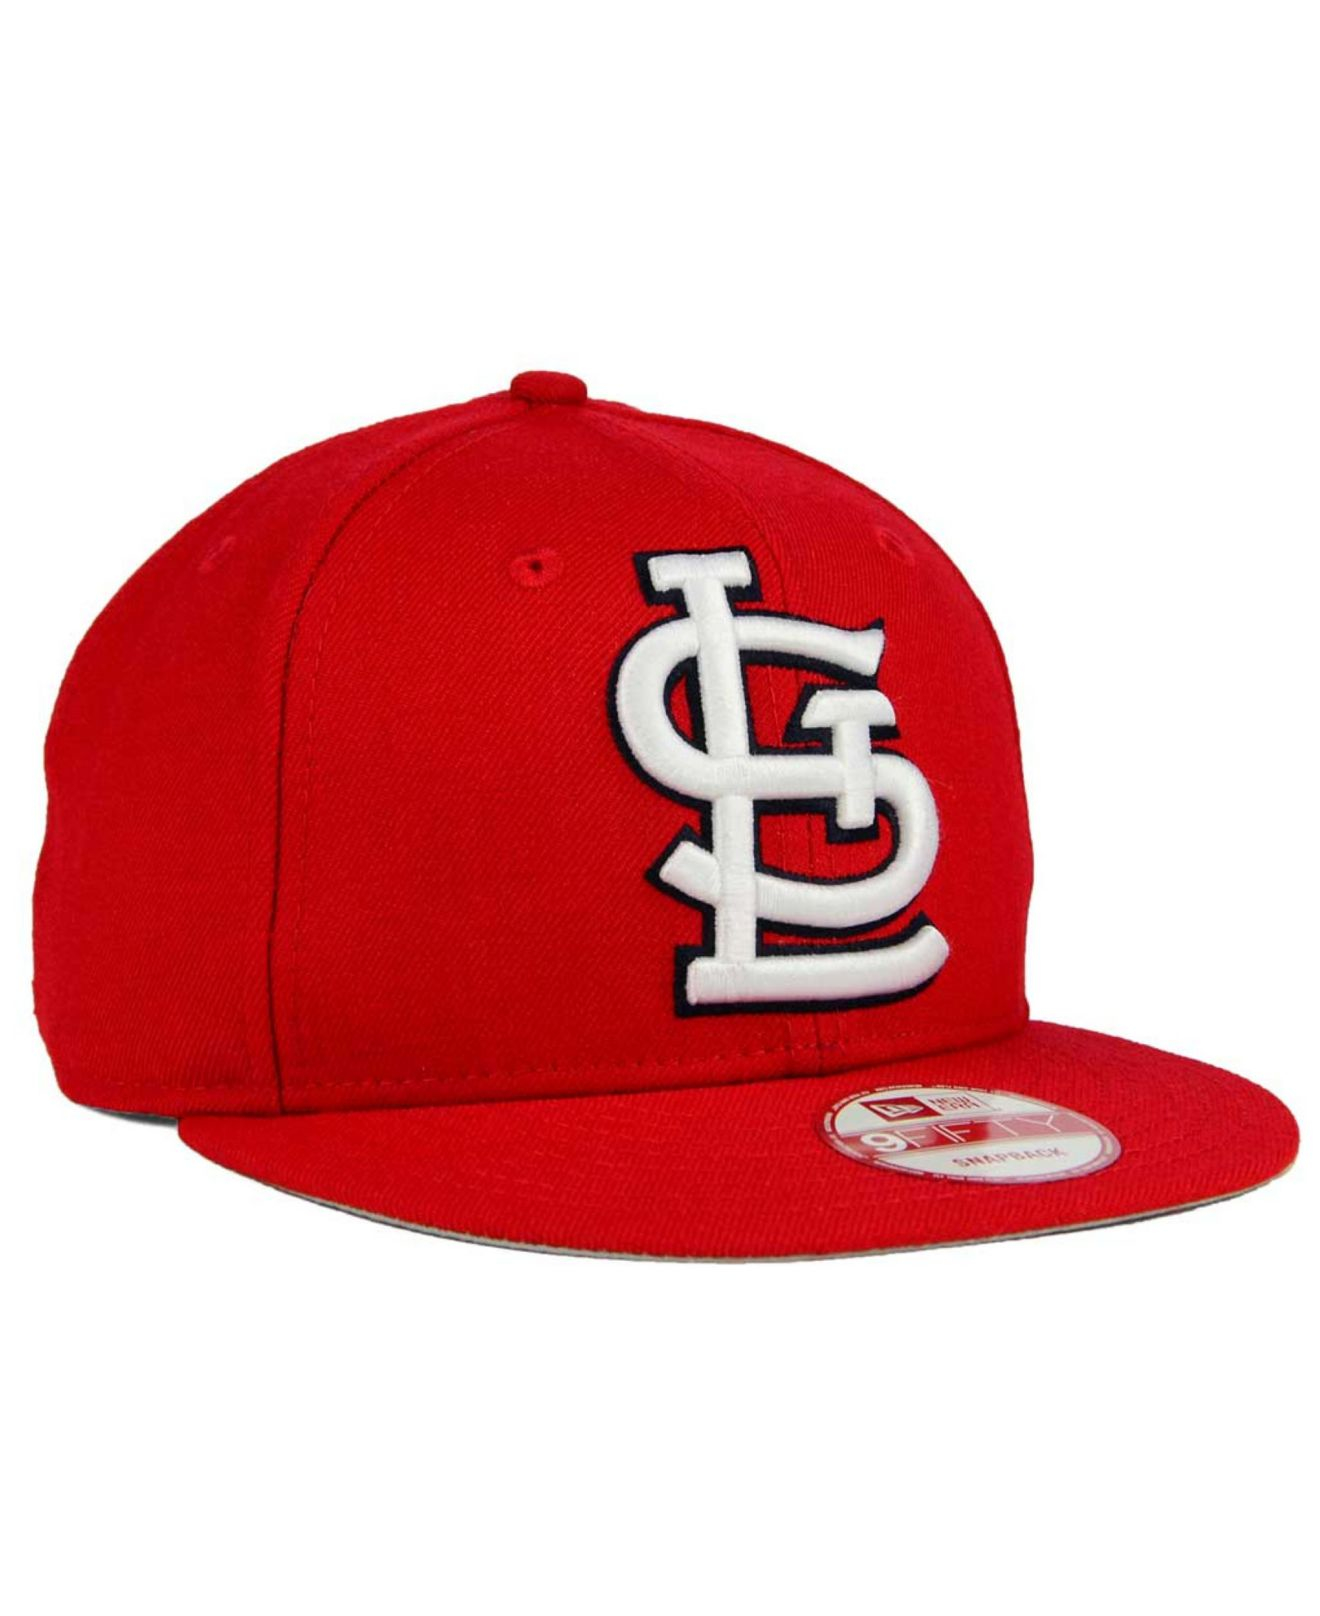 c70d9b4300f Lyst - Ktz St. Louis Cardinals Biggie 9fifty Snapback Cap in Red for Men